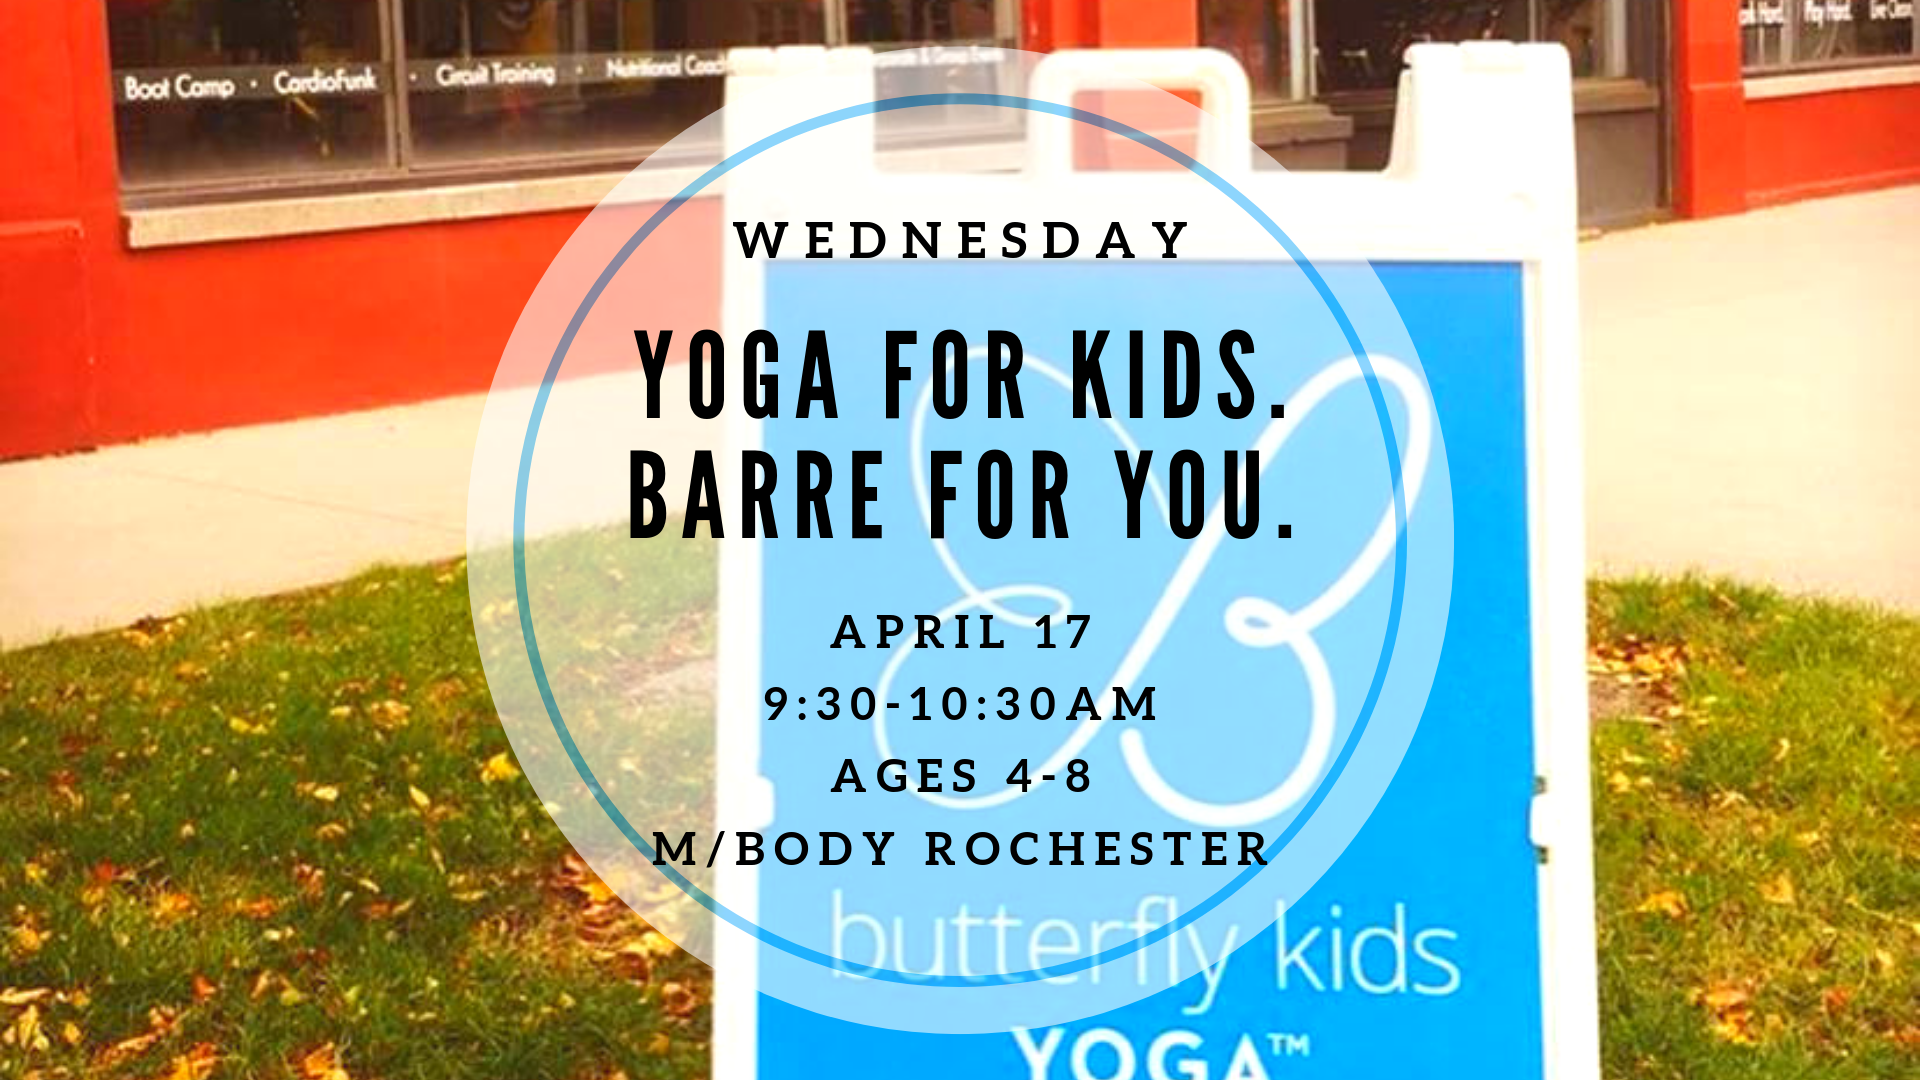 Kids Yoga for Kids. Barre for You..png